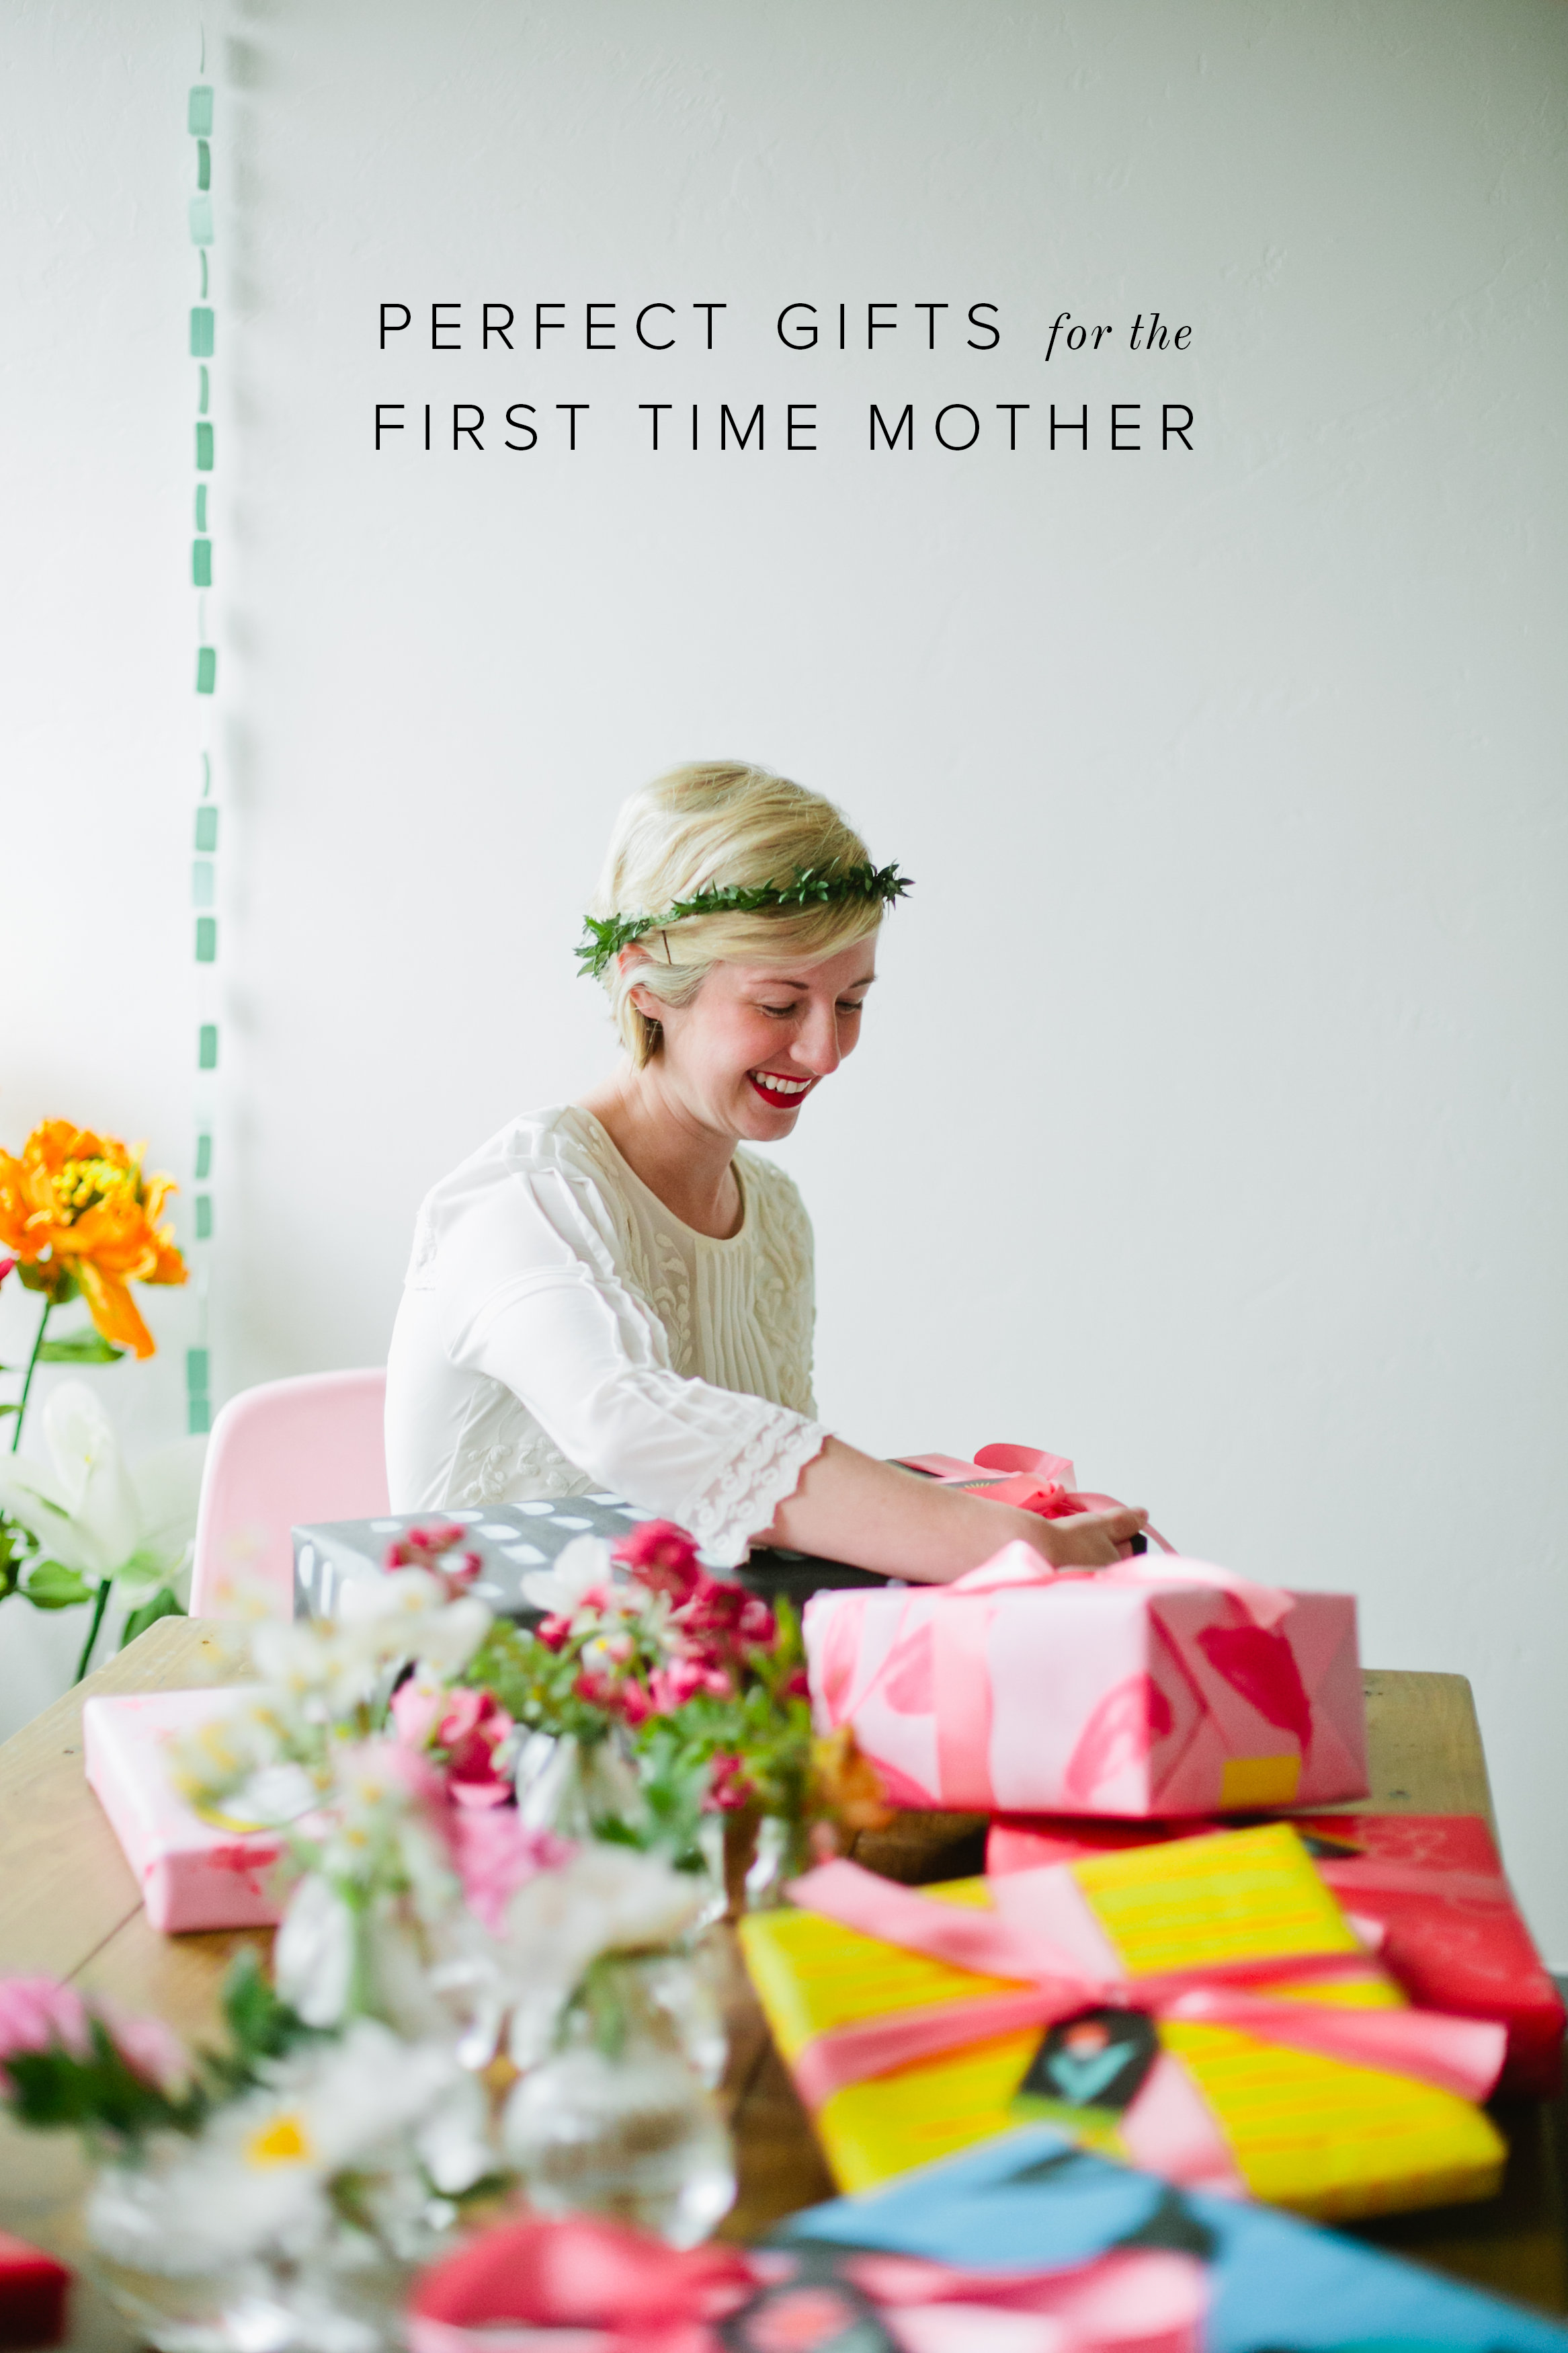 Perfect gifts for the first time mother